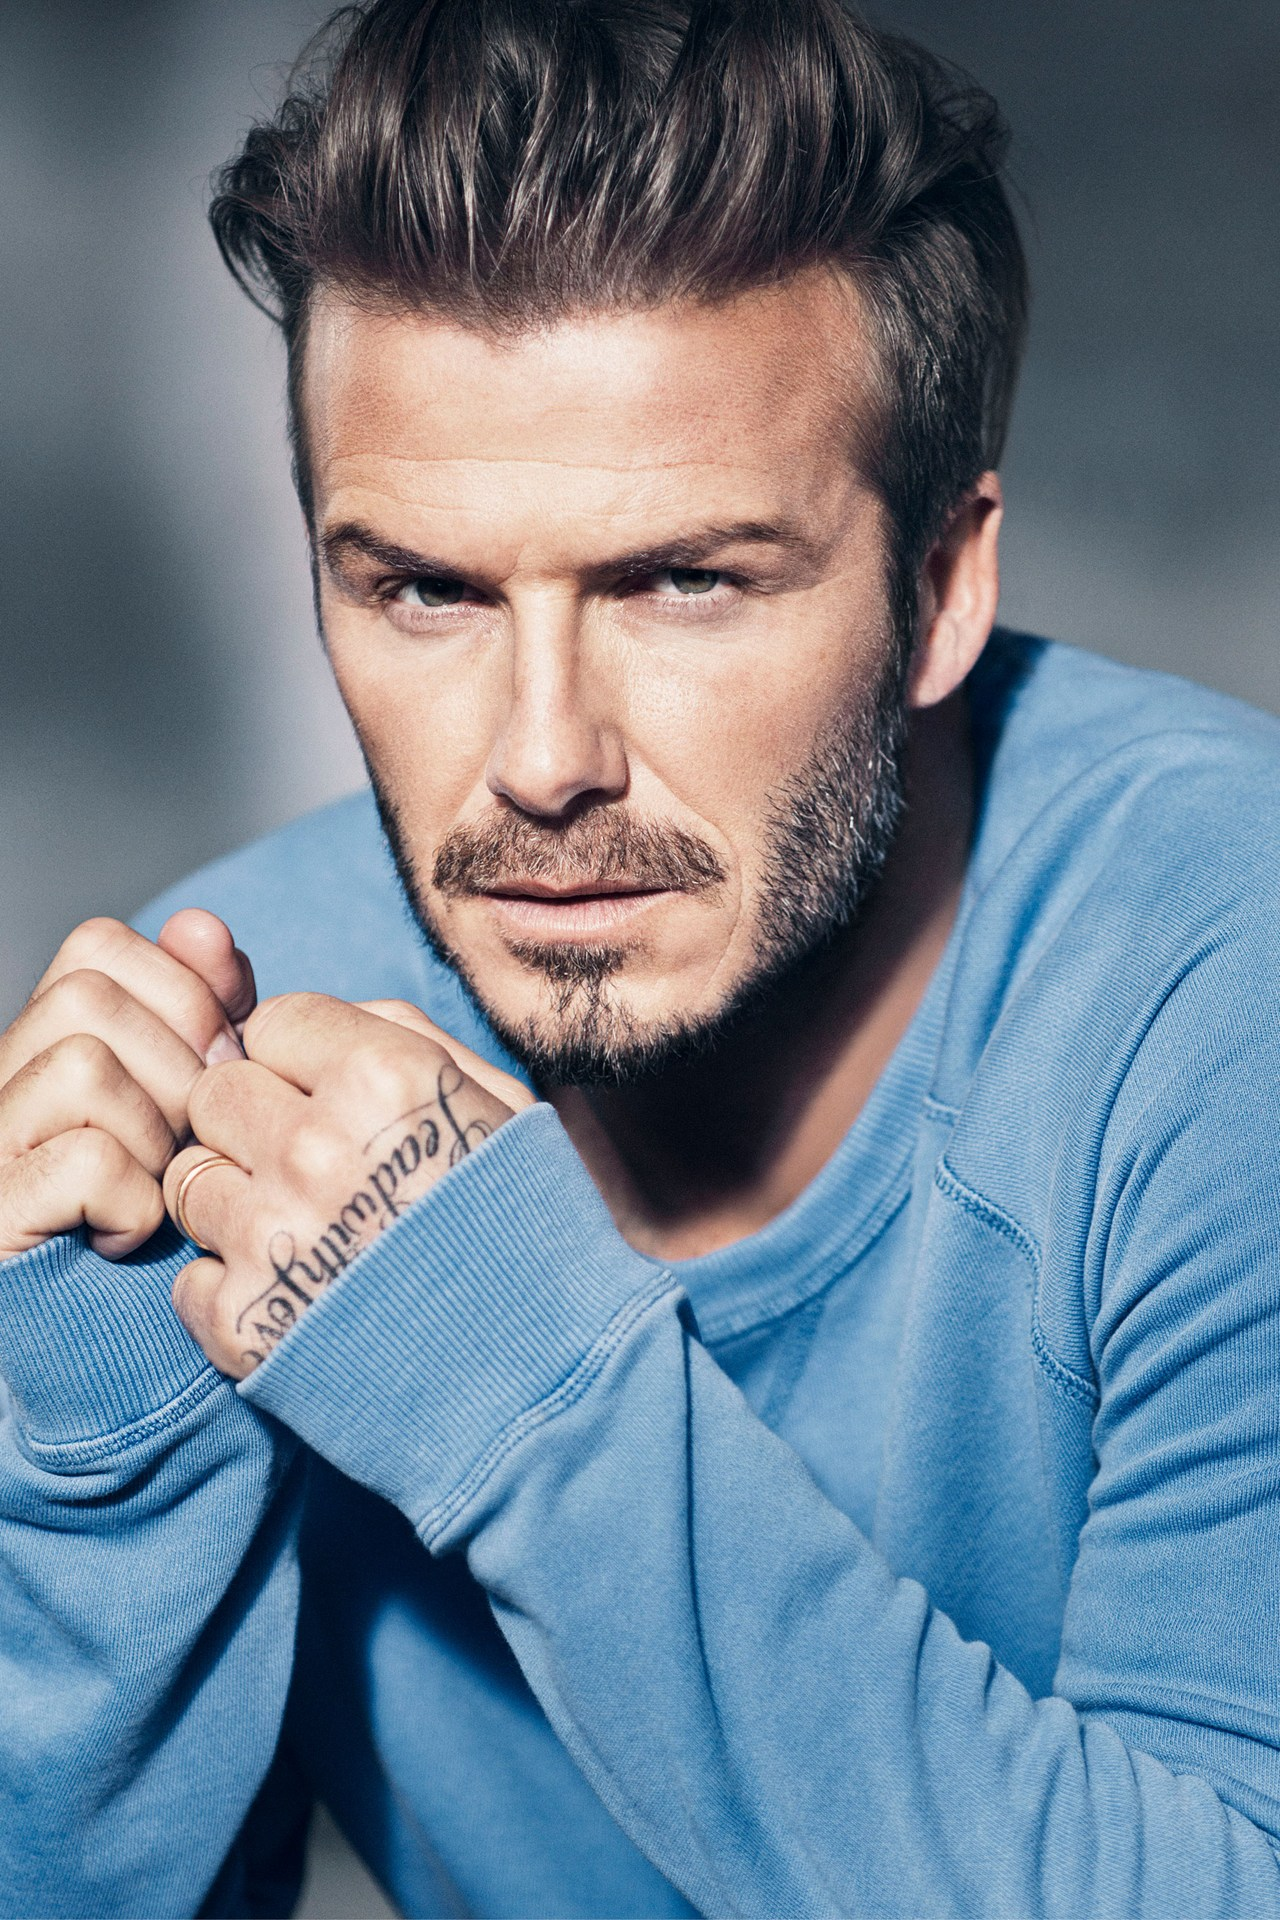 David-Beckham-HM-10-Vogue 20Jan15 pr_b_1280x1920